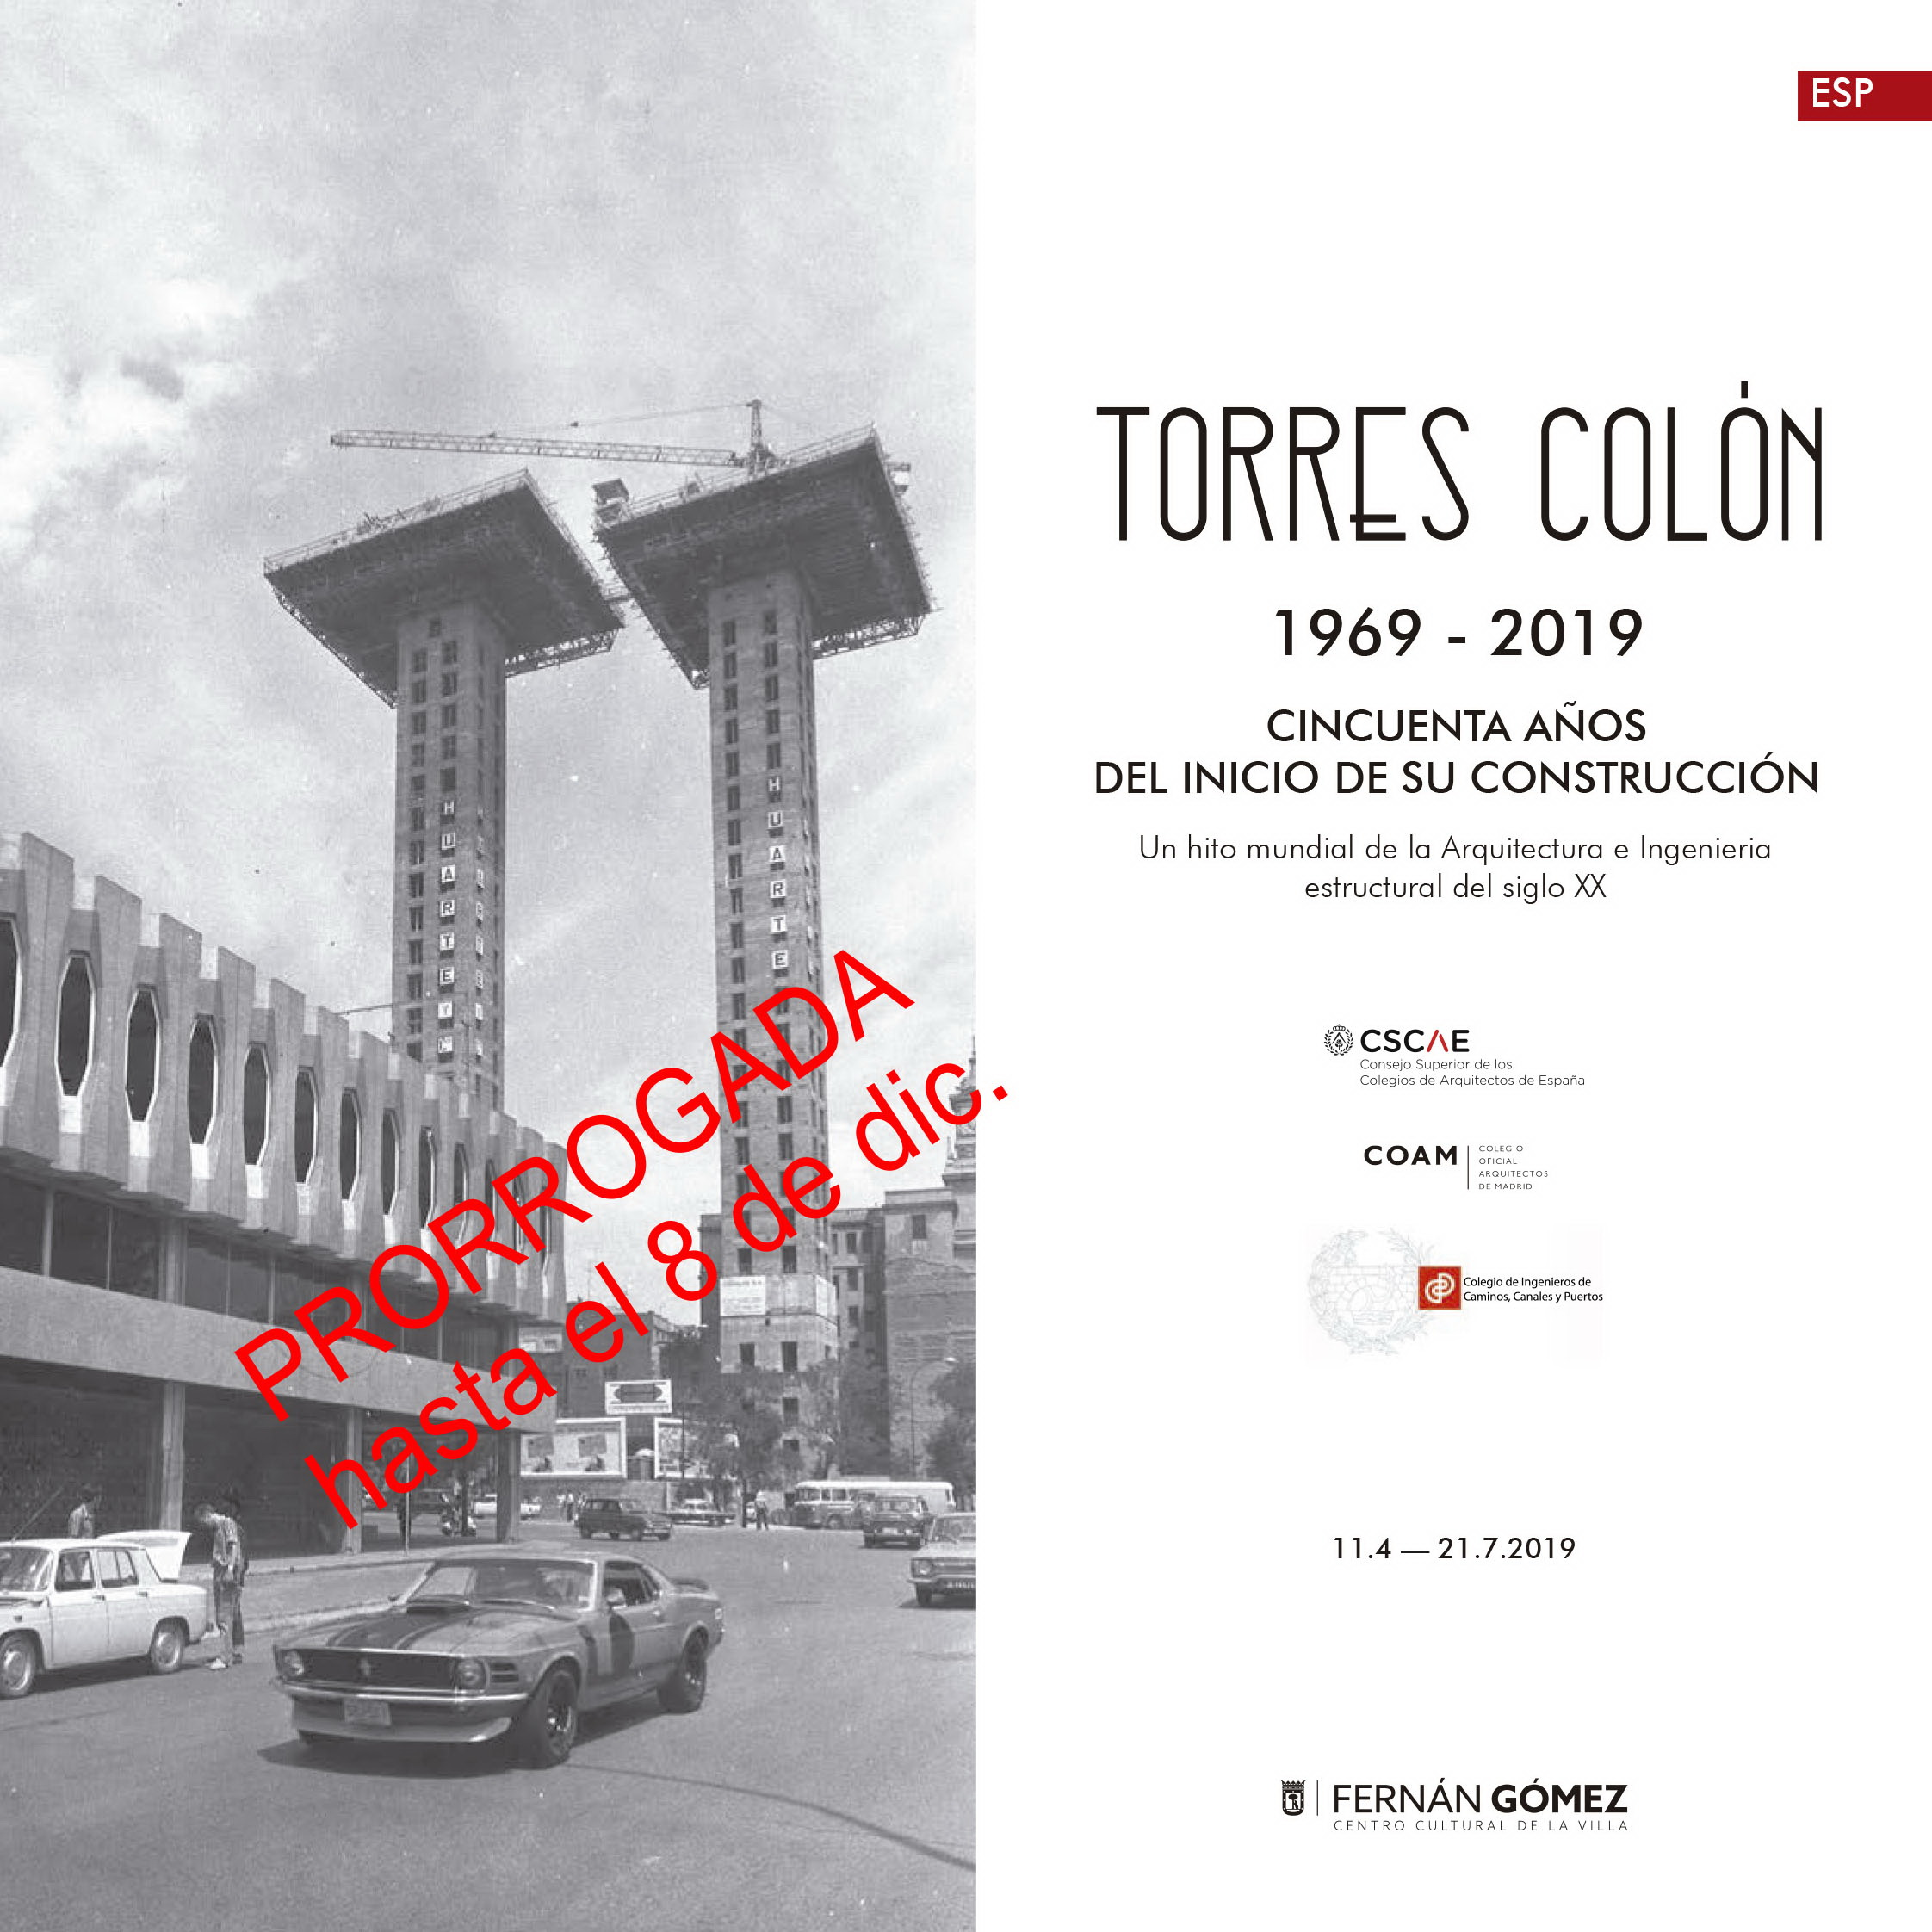 The Torres Colón (1969-2019) Exhibition has been extended until the 8th of December